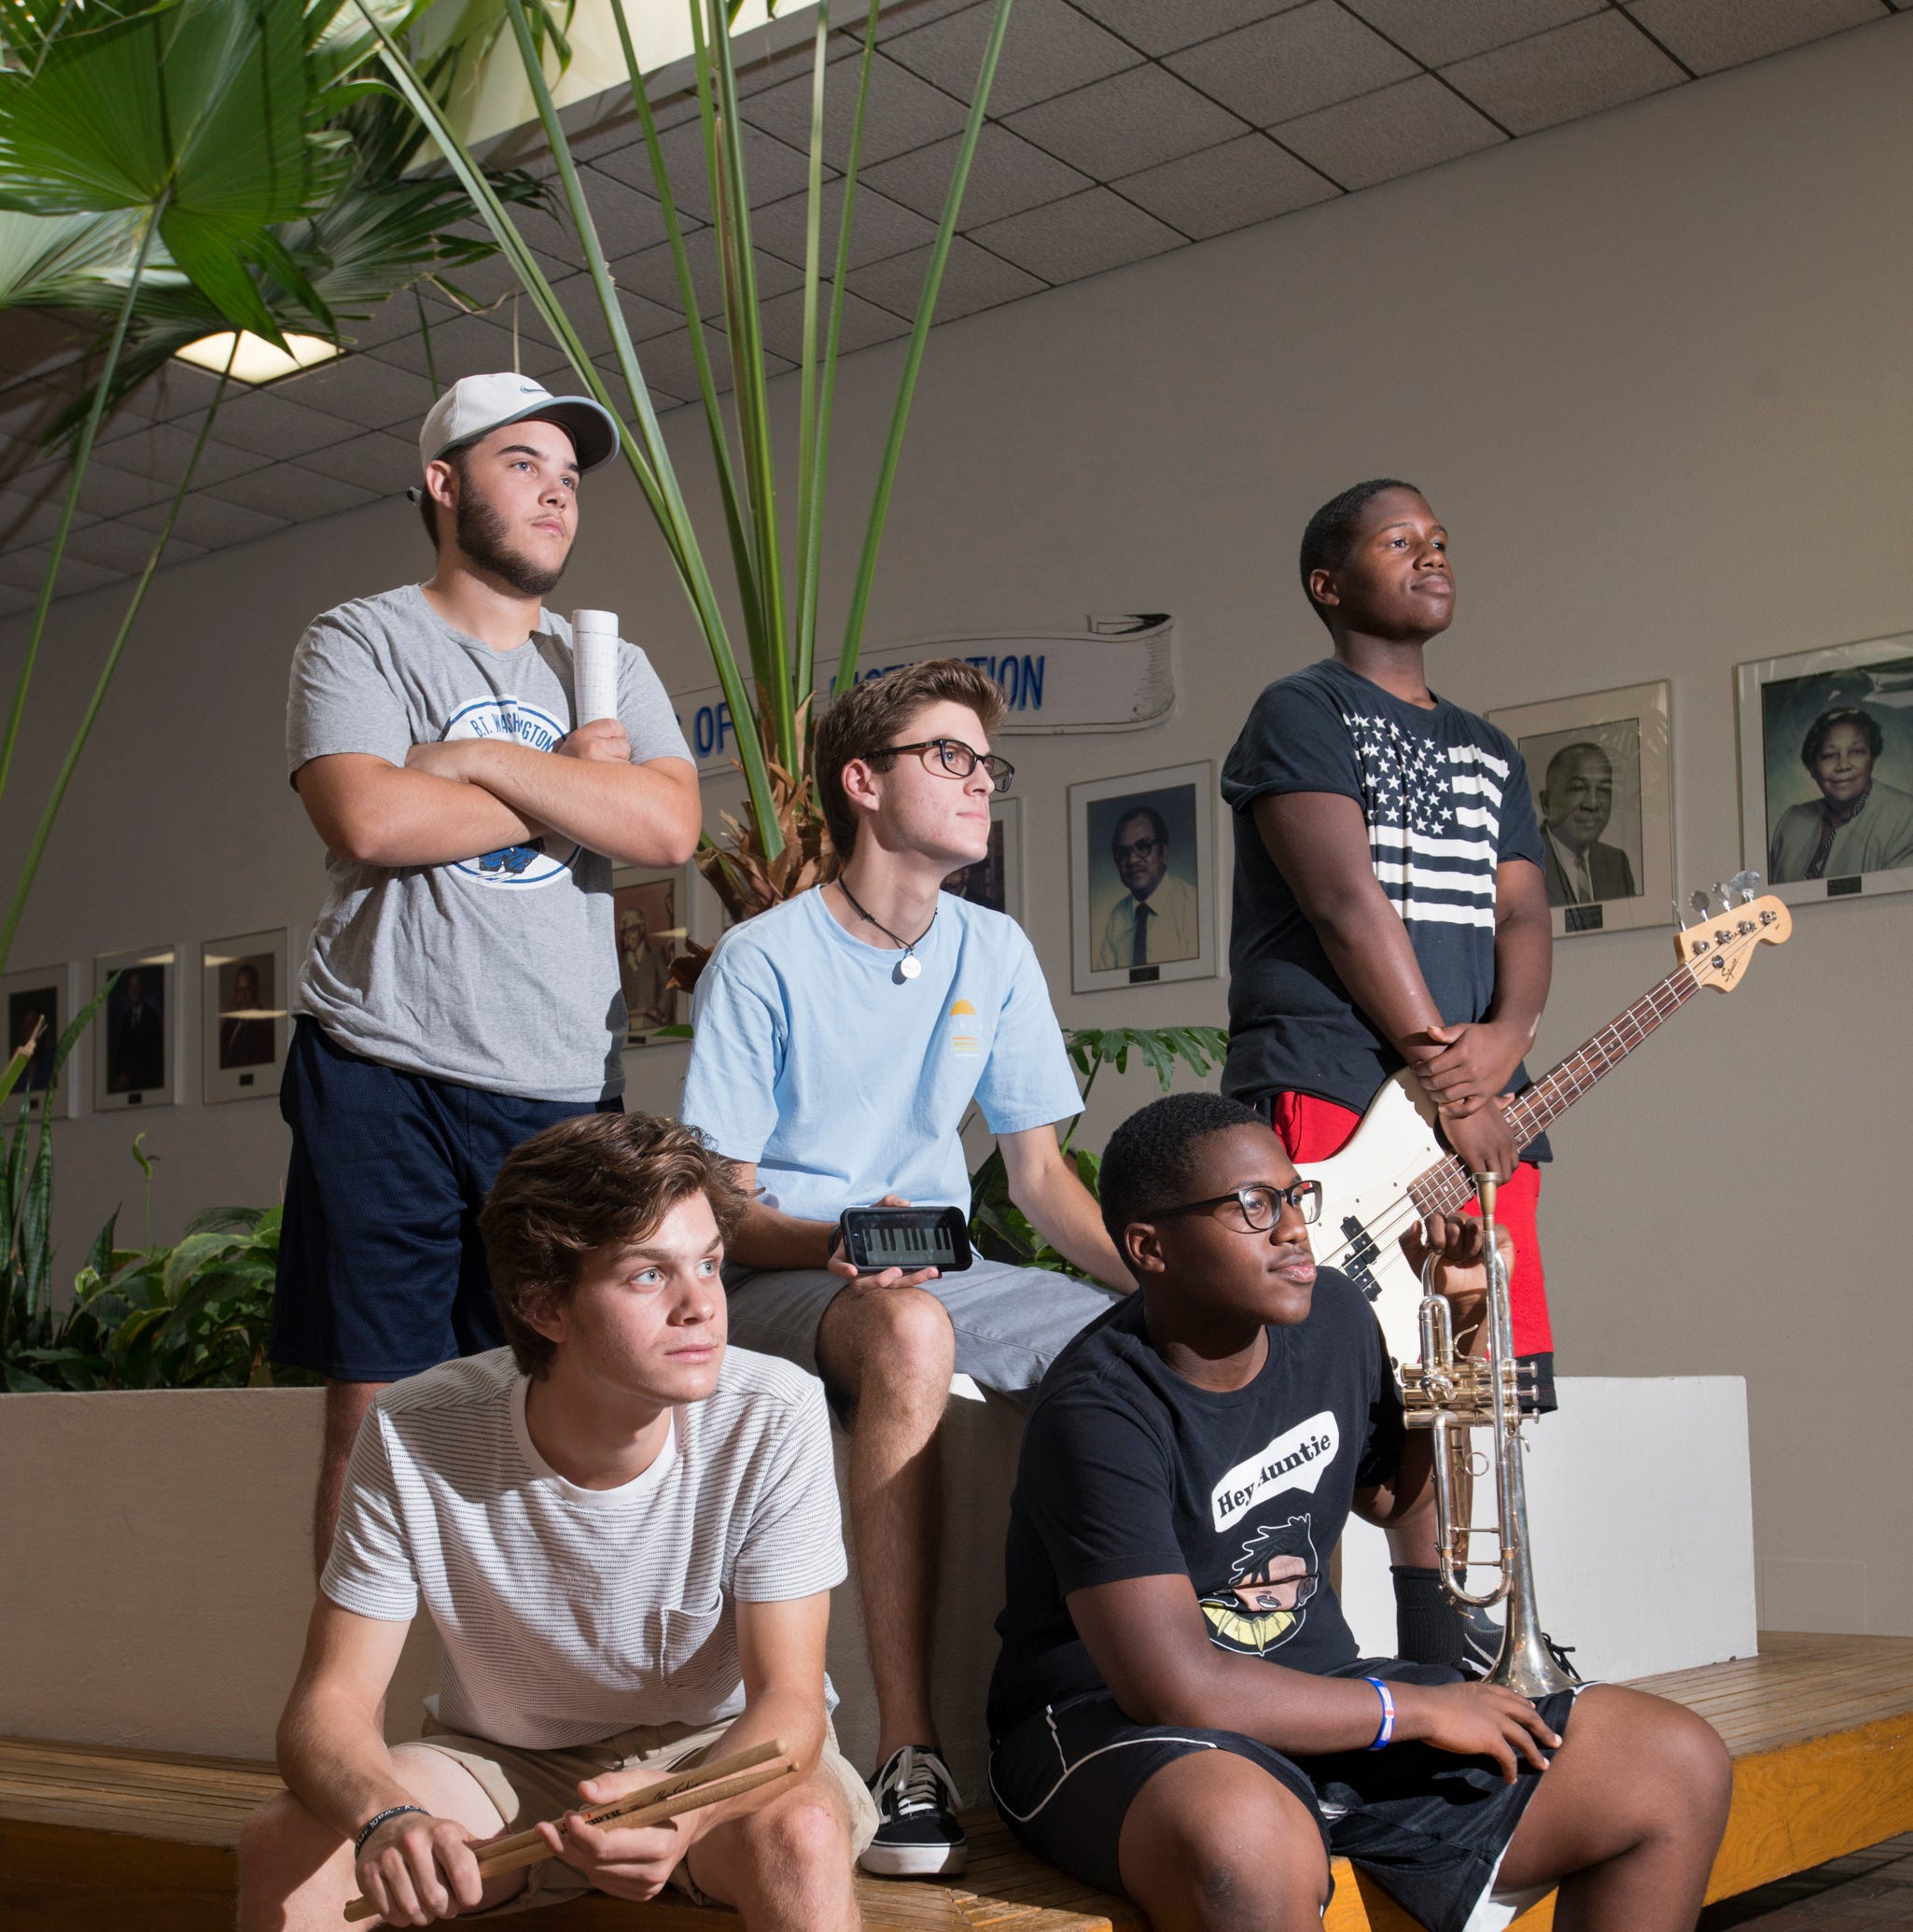 Soul Station found their groove early, now wowing crowds with pro-level jazz chops